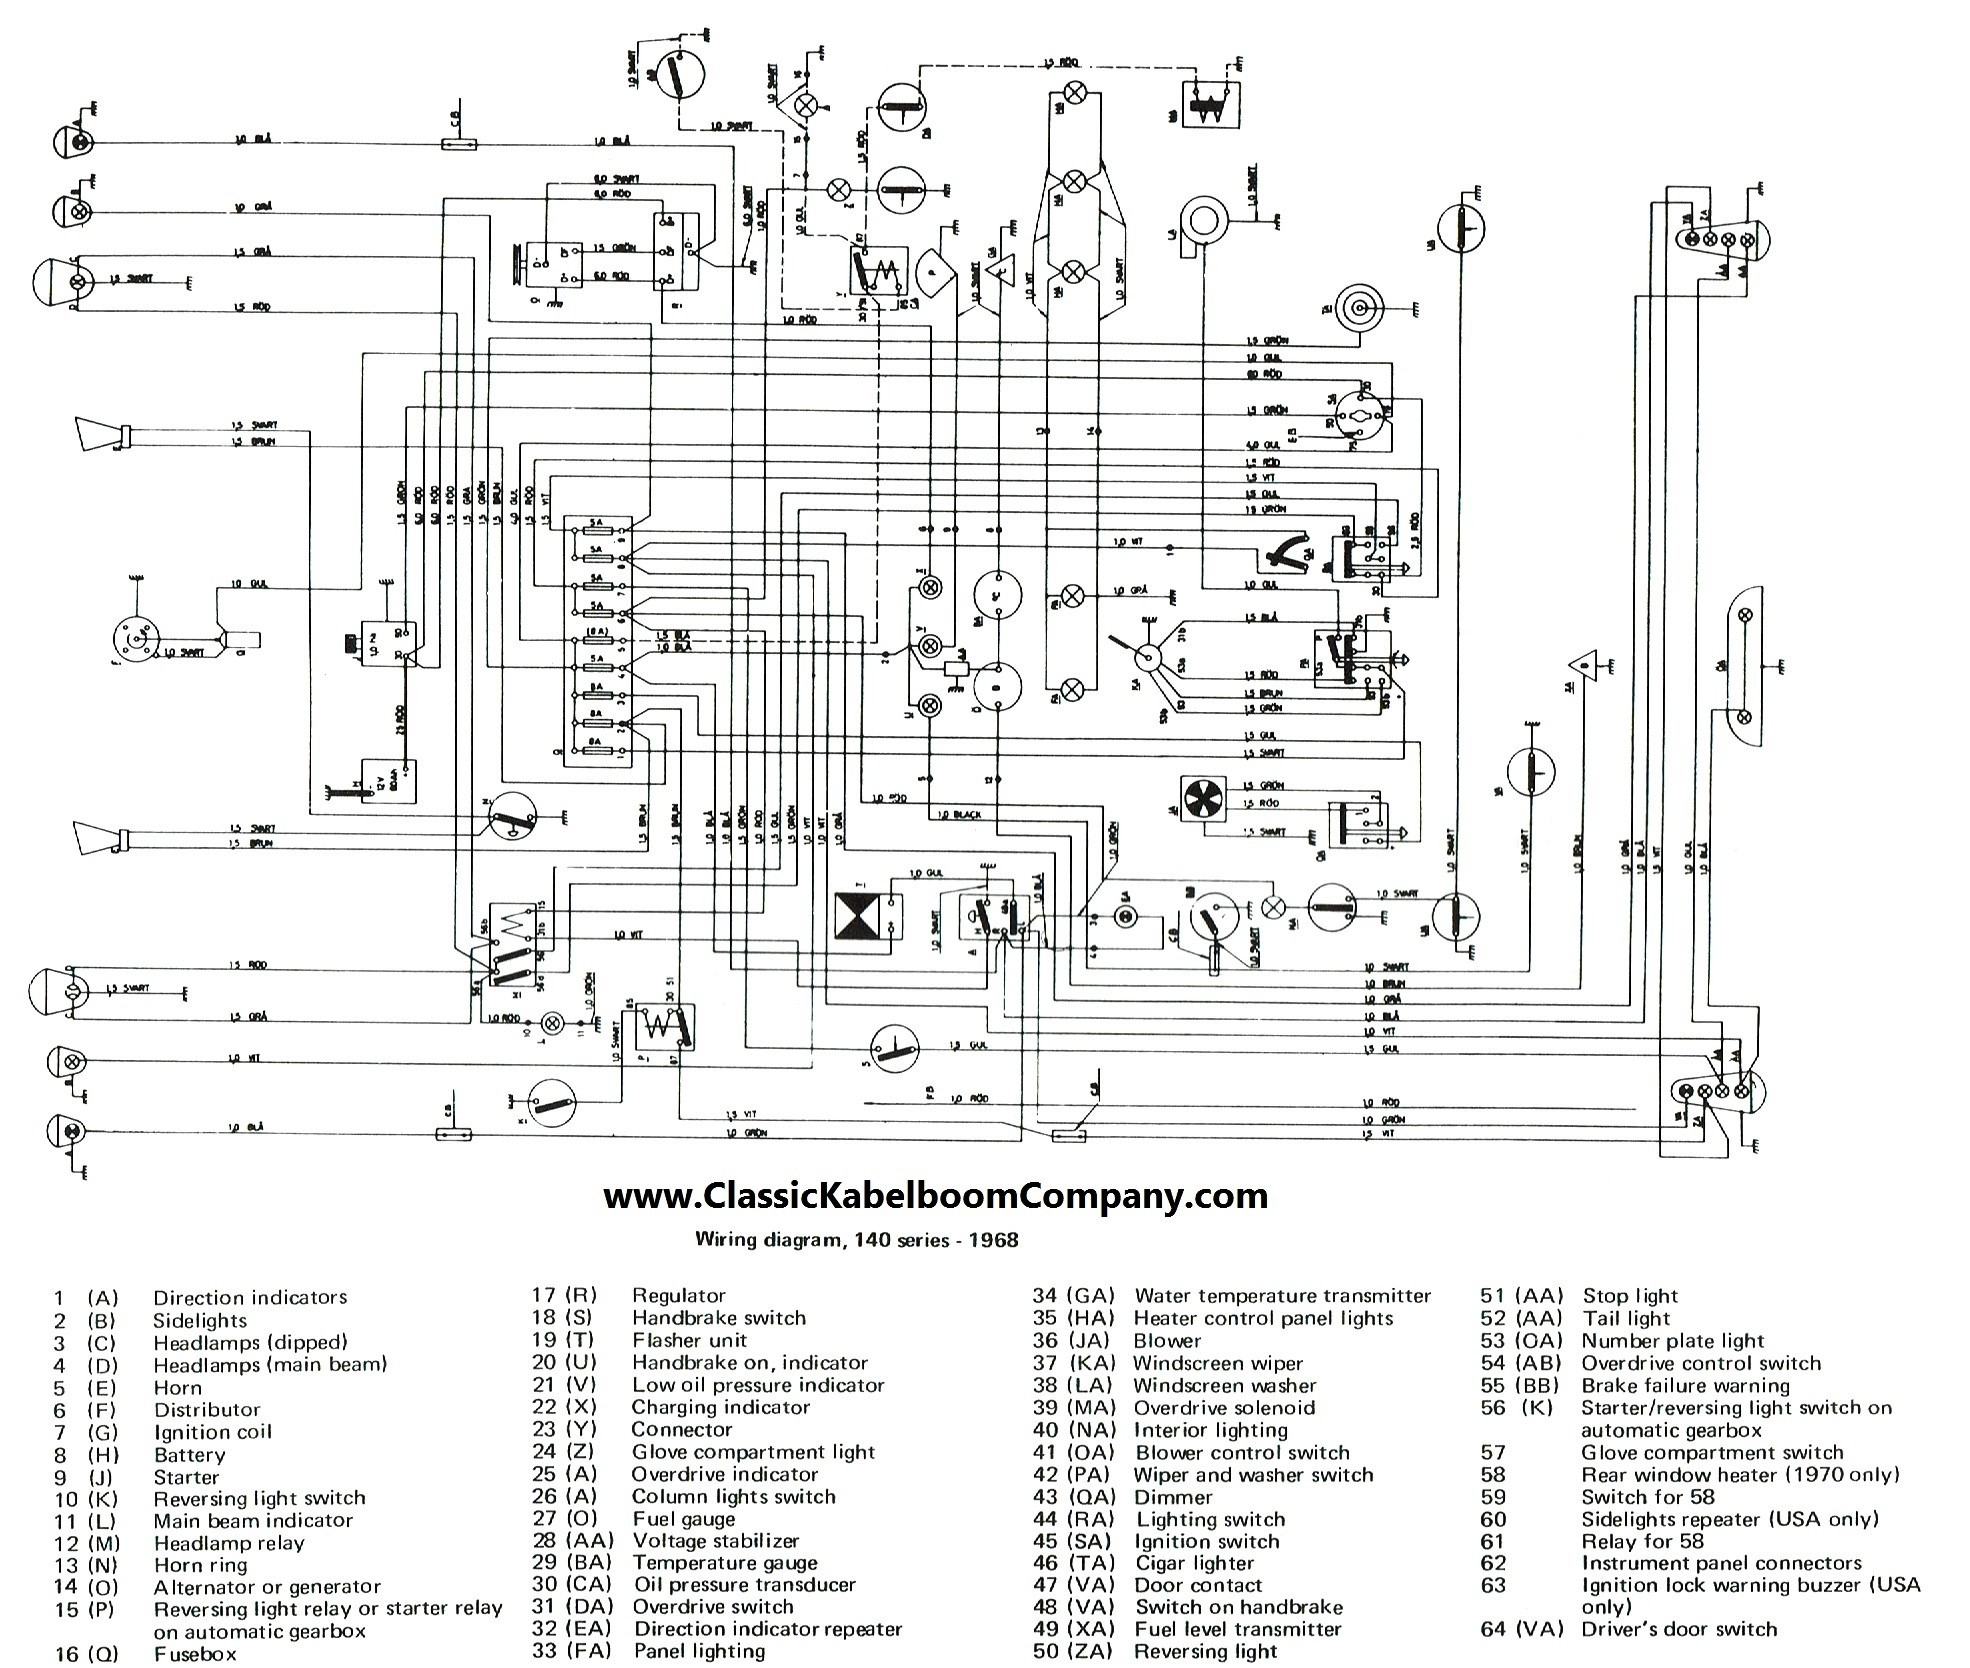 Honda Accord O2 Sensor Diagram